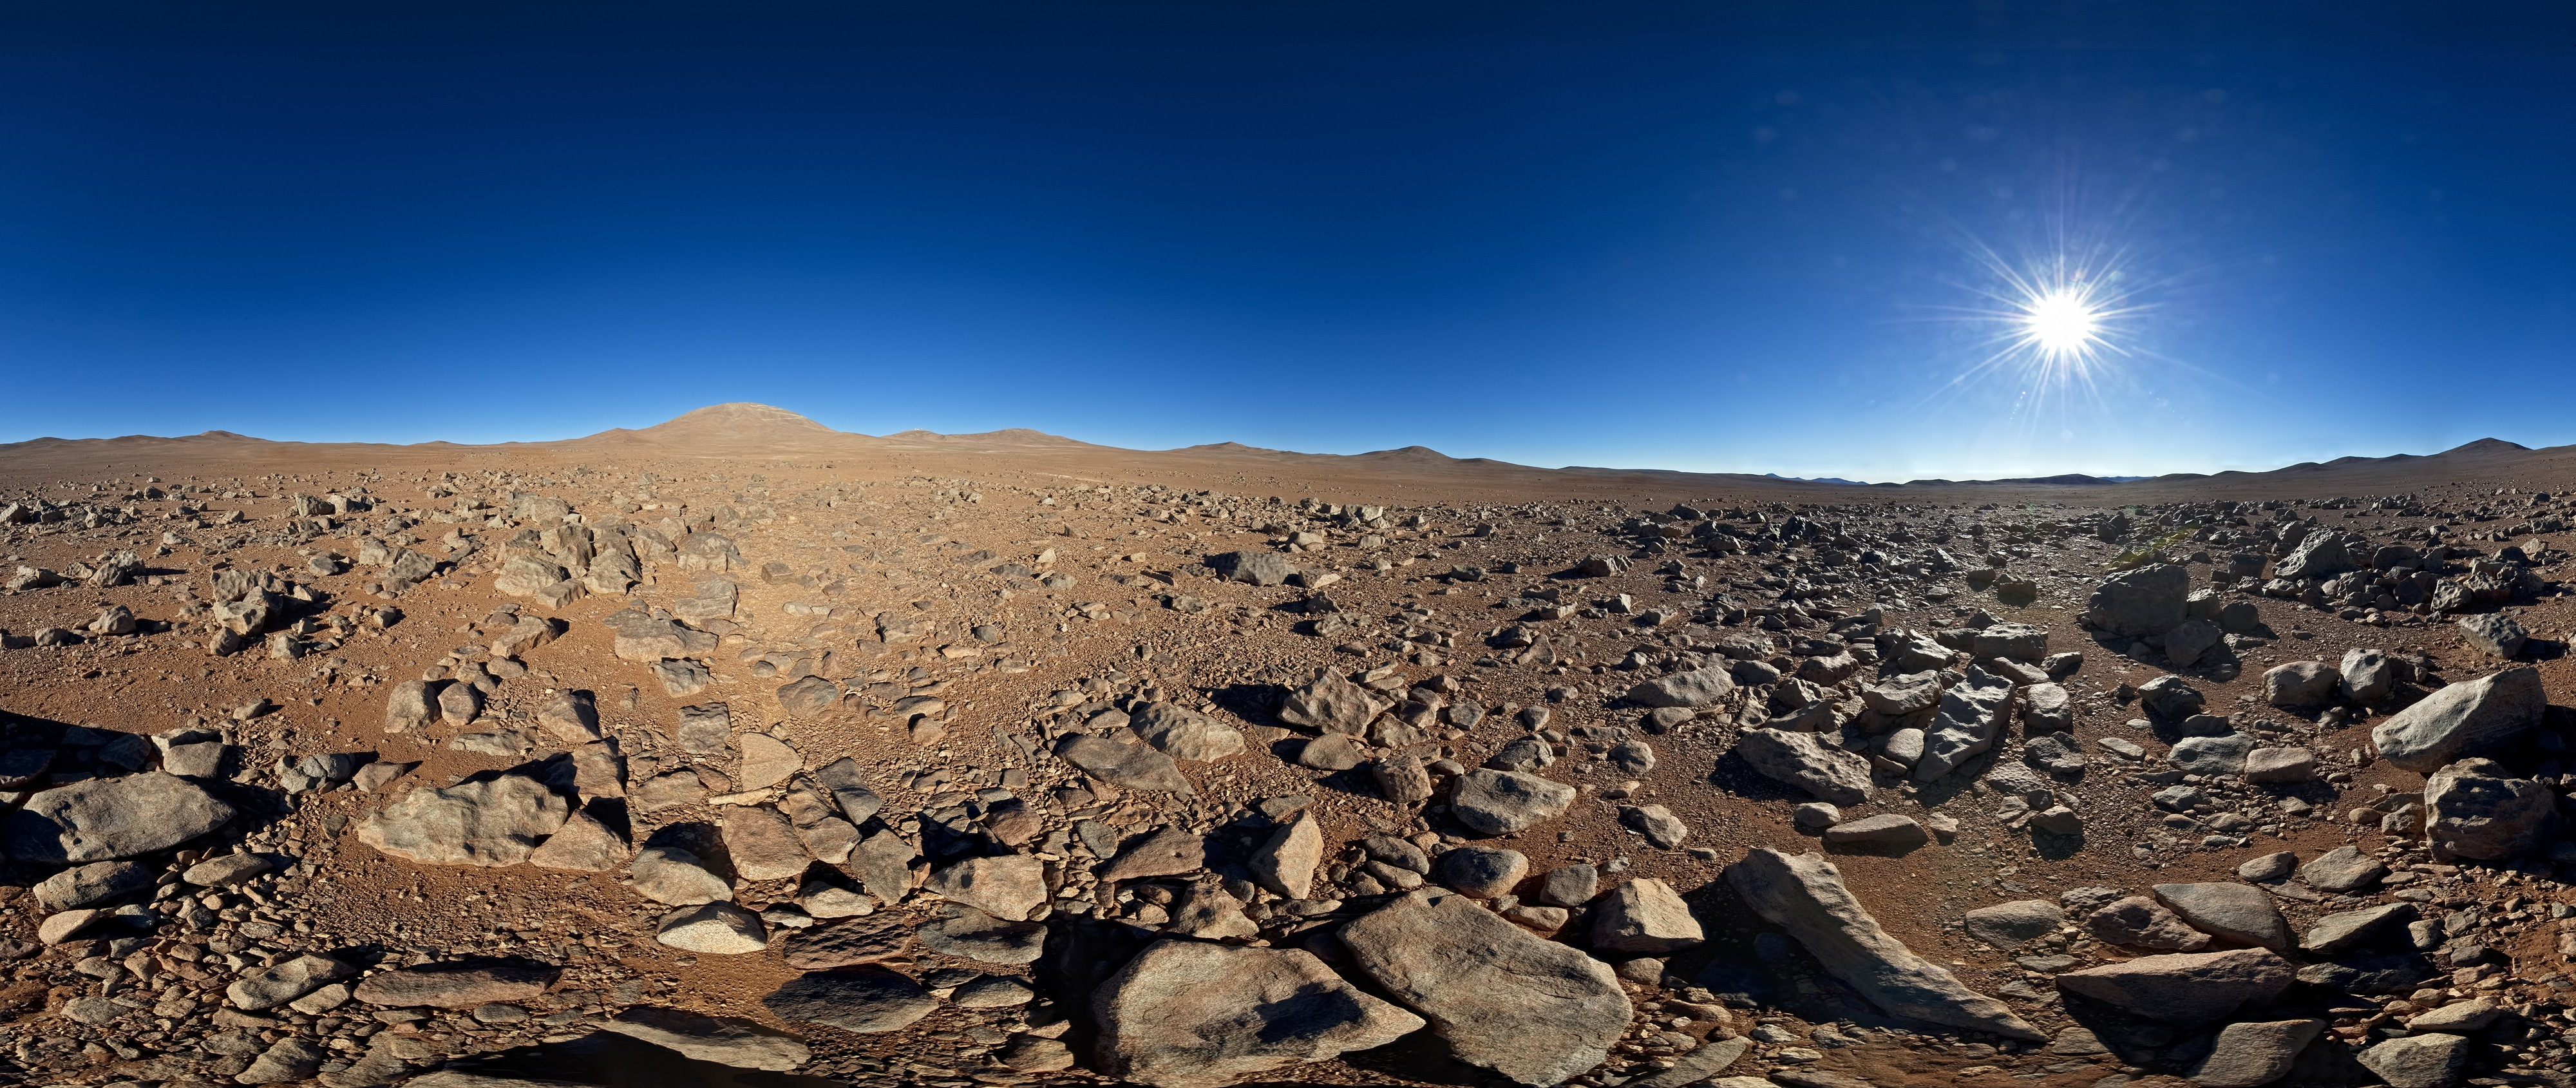 chile sun deserts panorama HD Wallpaper